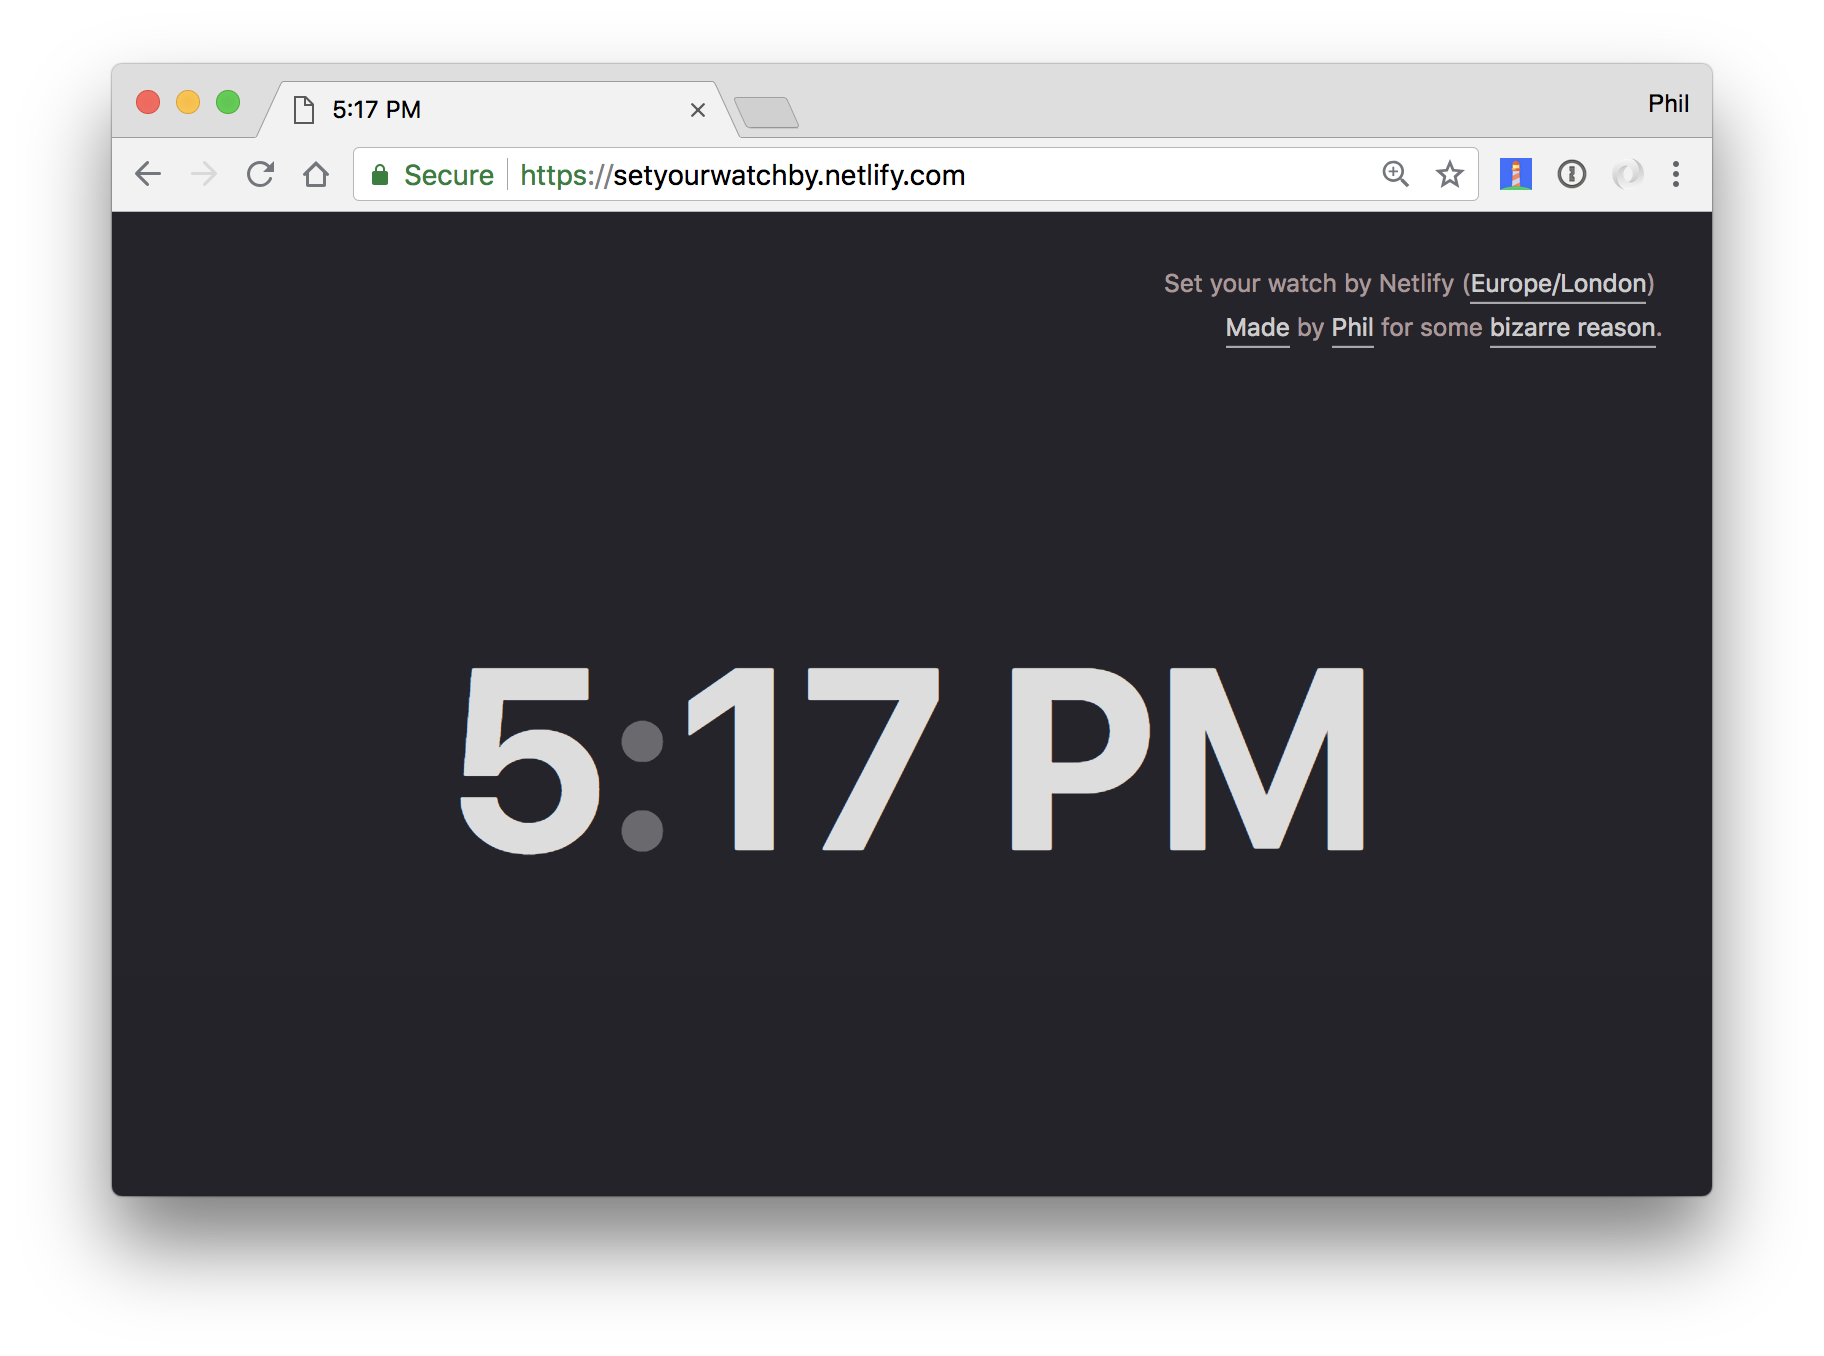 Screenshot of setyourwatchby.netlify.com showing the time 5:17pm